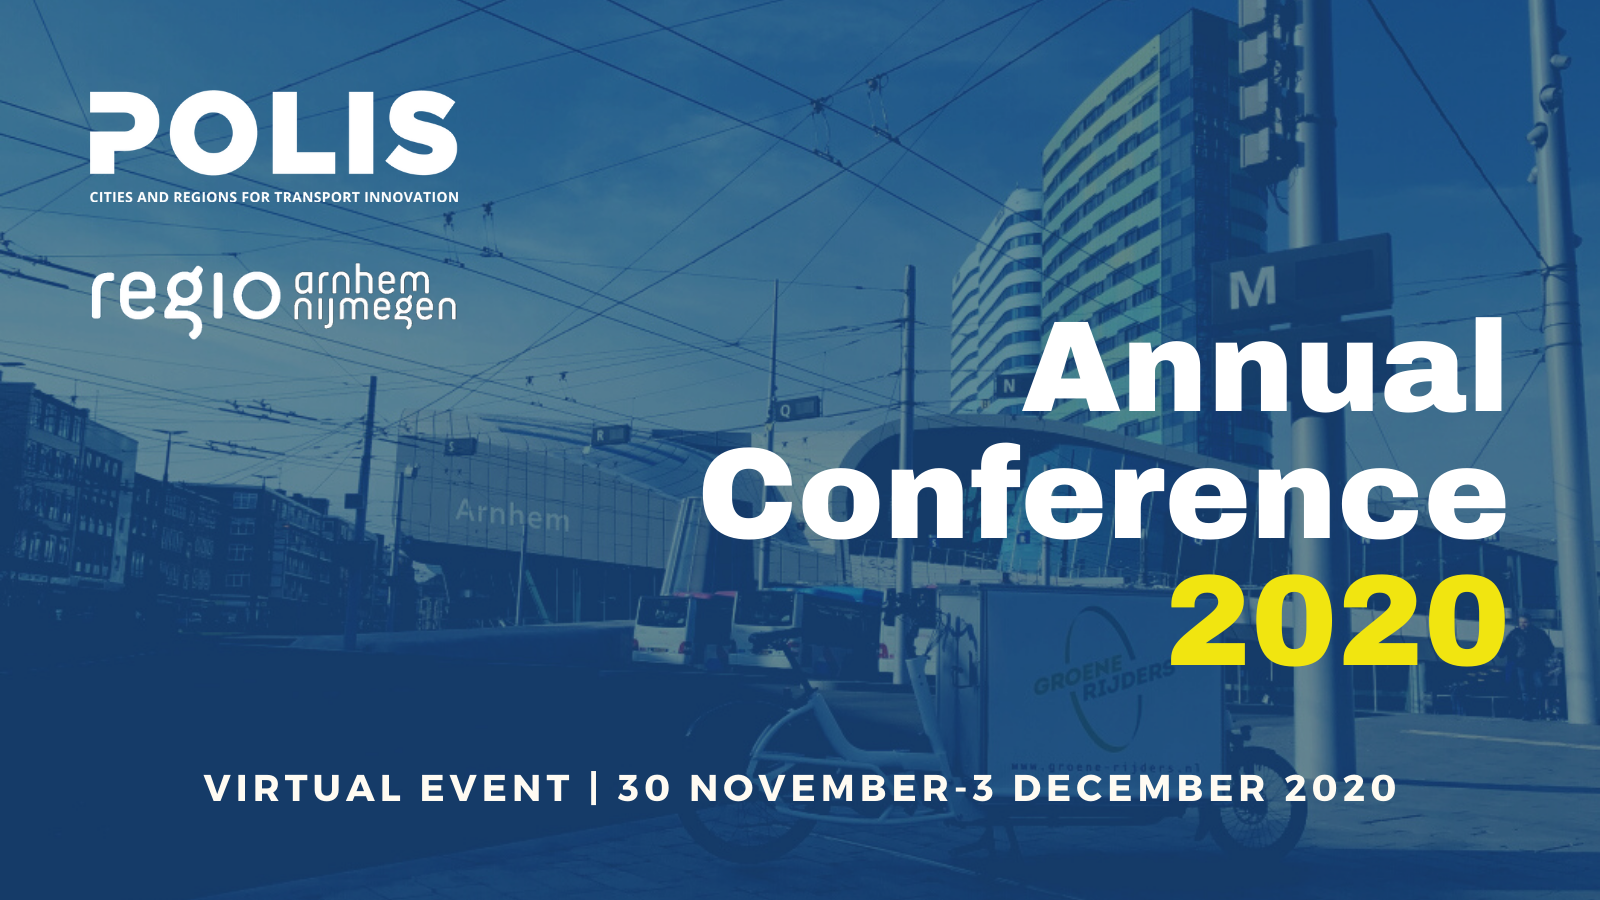 POLIS Conference 2020: Programme